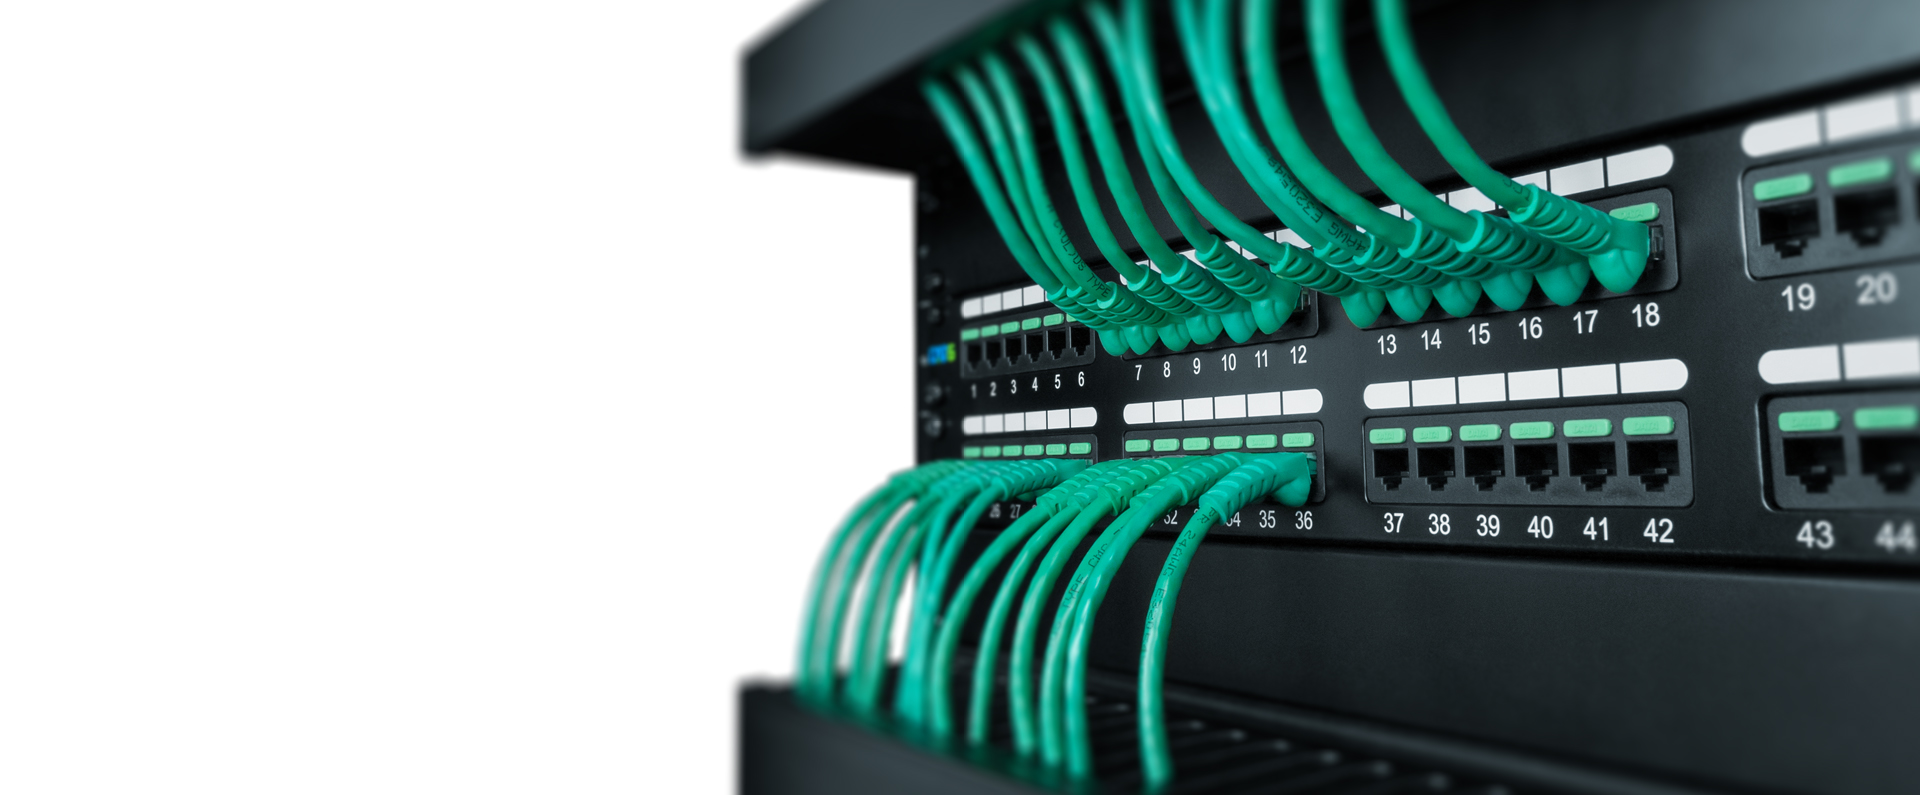 icc-patch-panels-v7.jpg